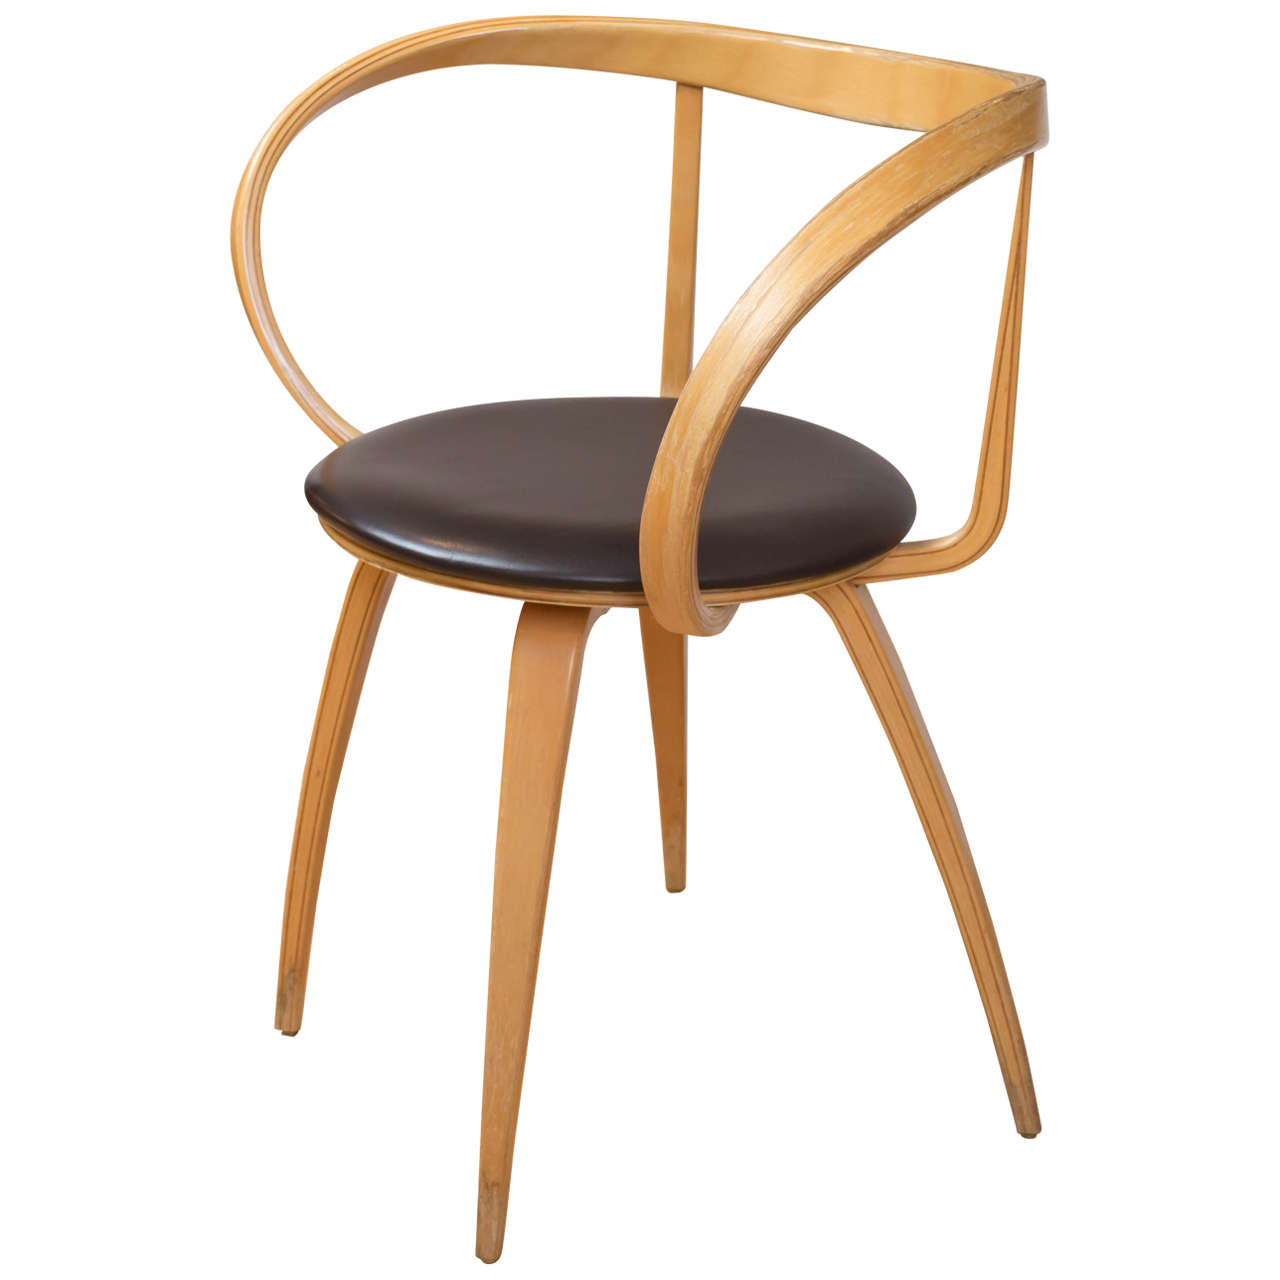 Pretzel Chair George Nelson Pair Of Pretzel Chairs For Sale At 1stdibs